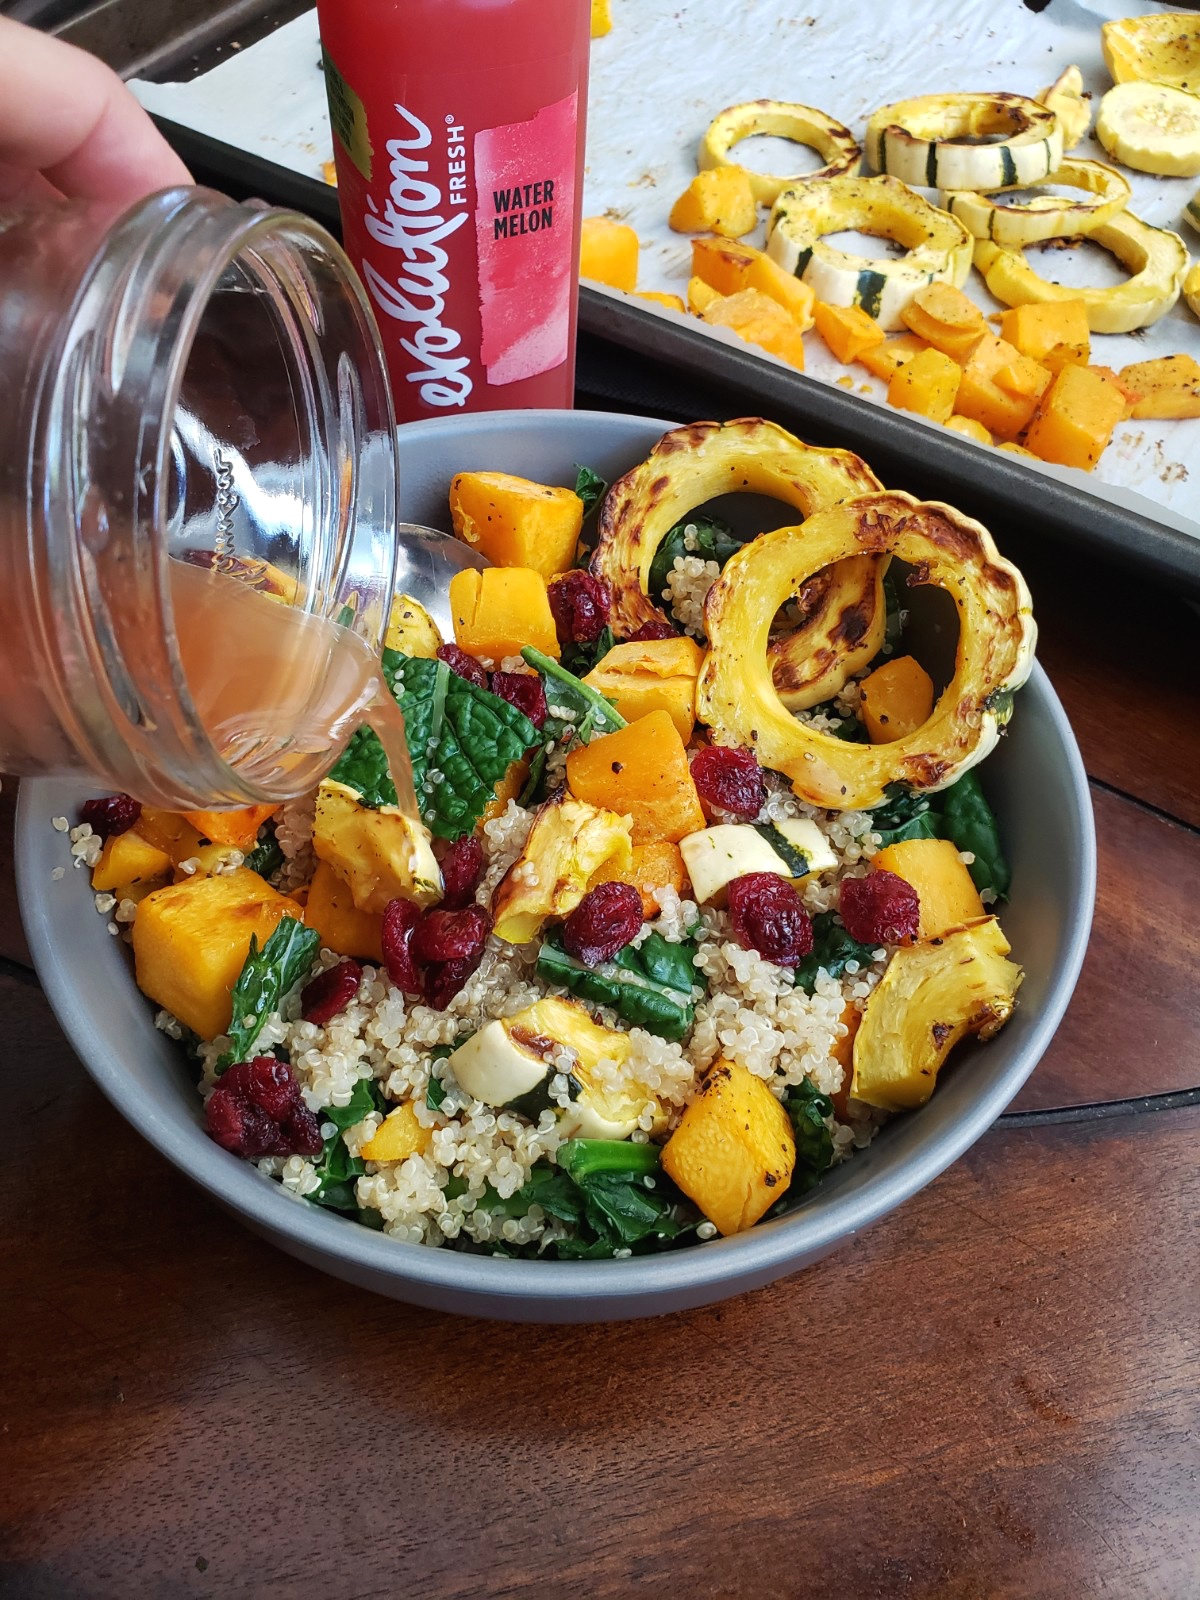 The dressing is light and won't weight you down or take away from the natural flavors of the squash. It's citrusy and lightly sweetened.